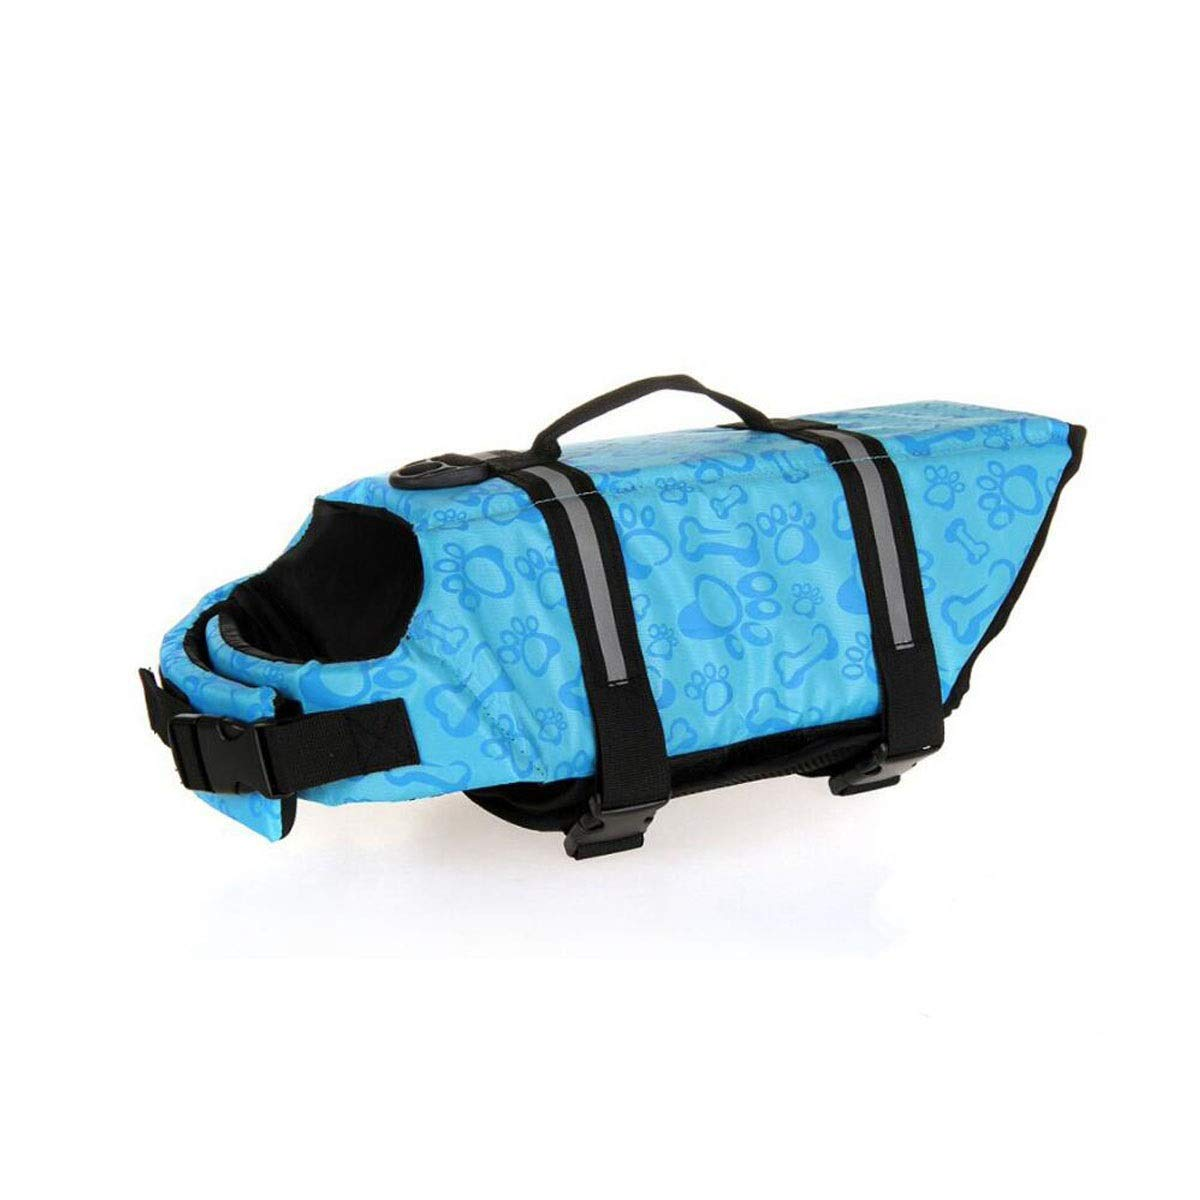 bluee XS bluee XS Life Jacket, Dog Breathable and Comfortable Swimming Vest, Oxford Cloth Quality Material, Pink and Other Multi-color Optional, Easy to Carry (Size  M, XS) (color   bluee, Size   XS)